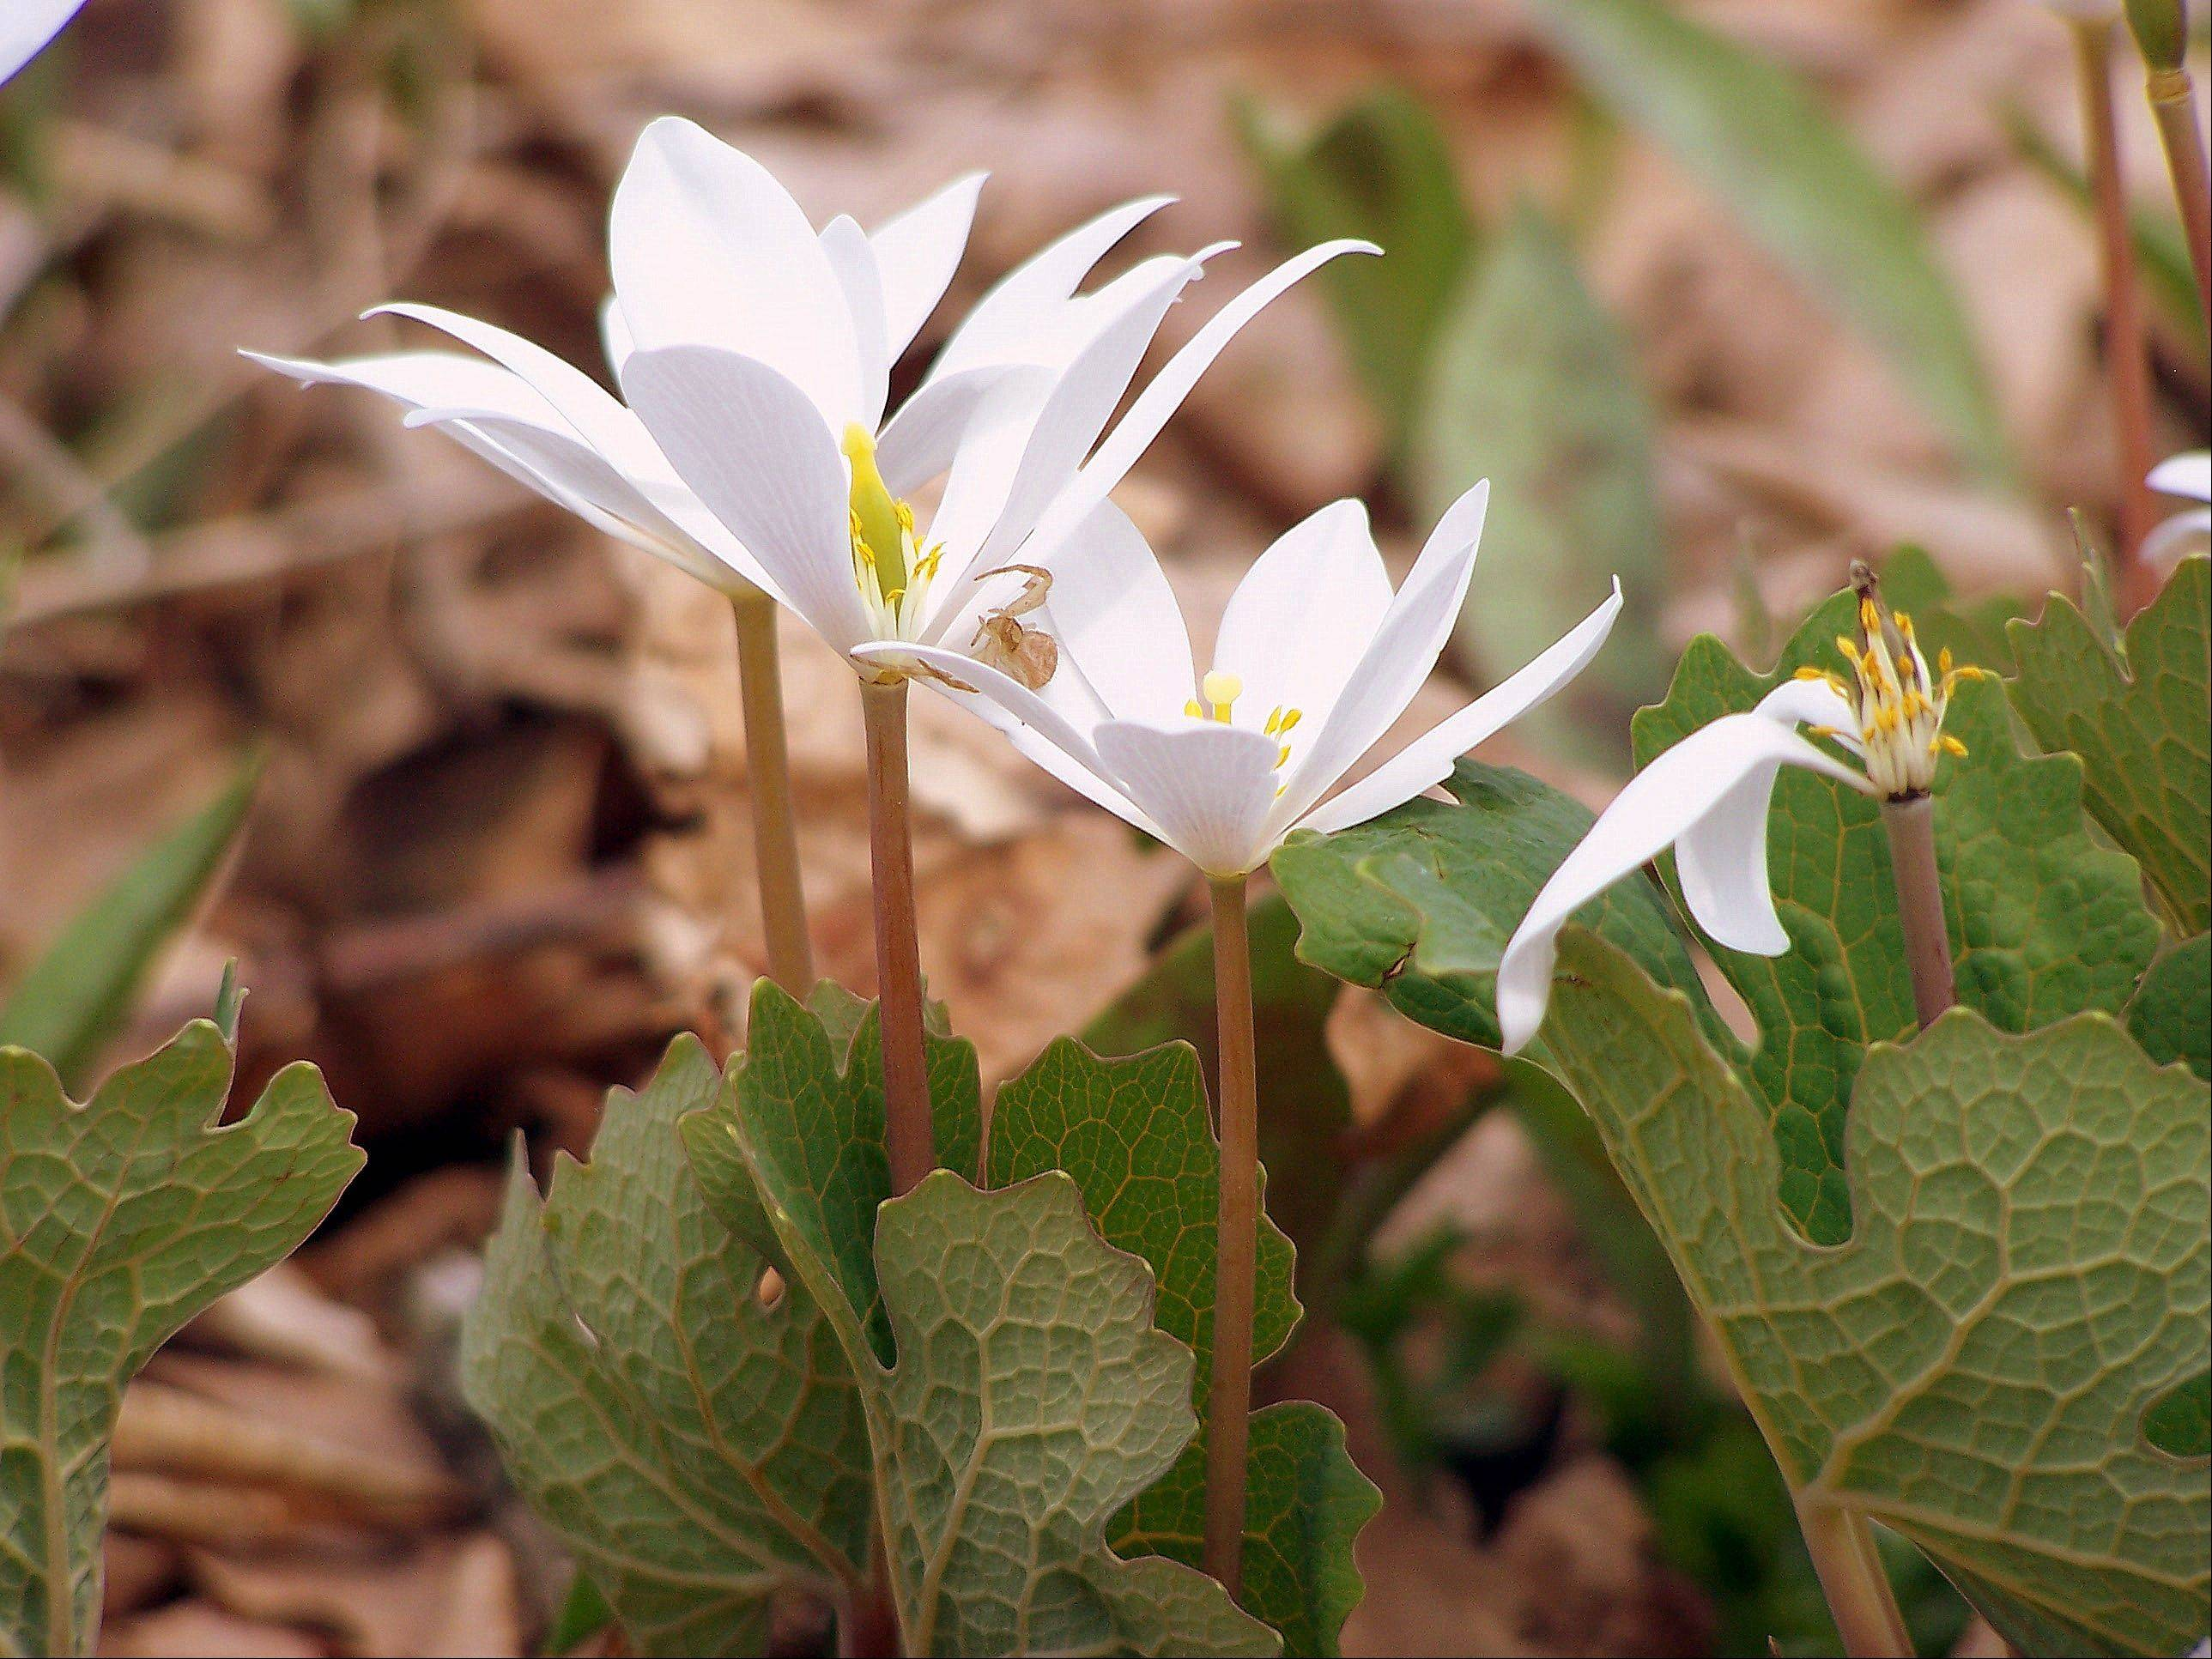 It's spring and flowers will be blooming soon. This is a picture of a plant called bloodroot that I took last spring at MCCD's Living Land Farm. Bloodroot was used by Native Americans for both its curative properties and as a natural dye.